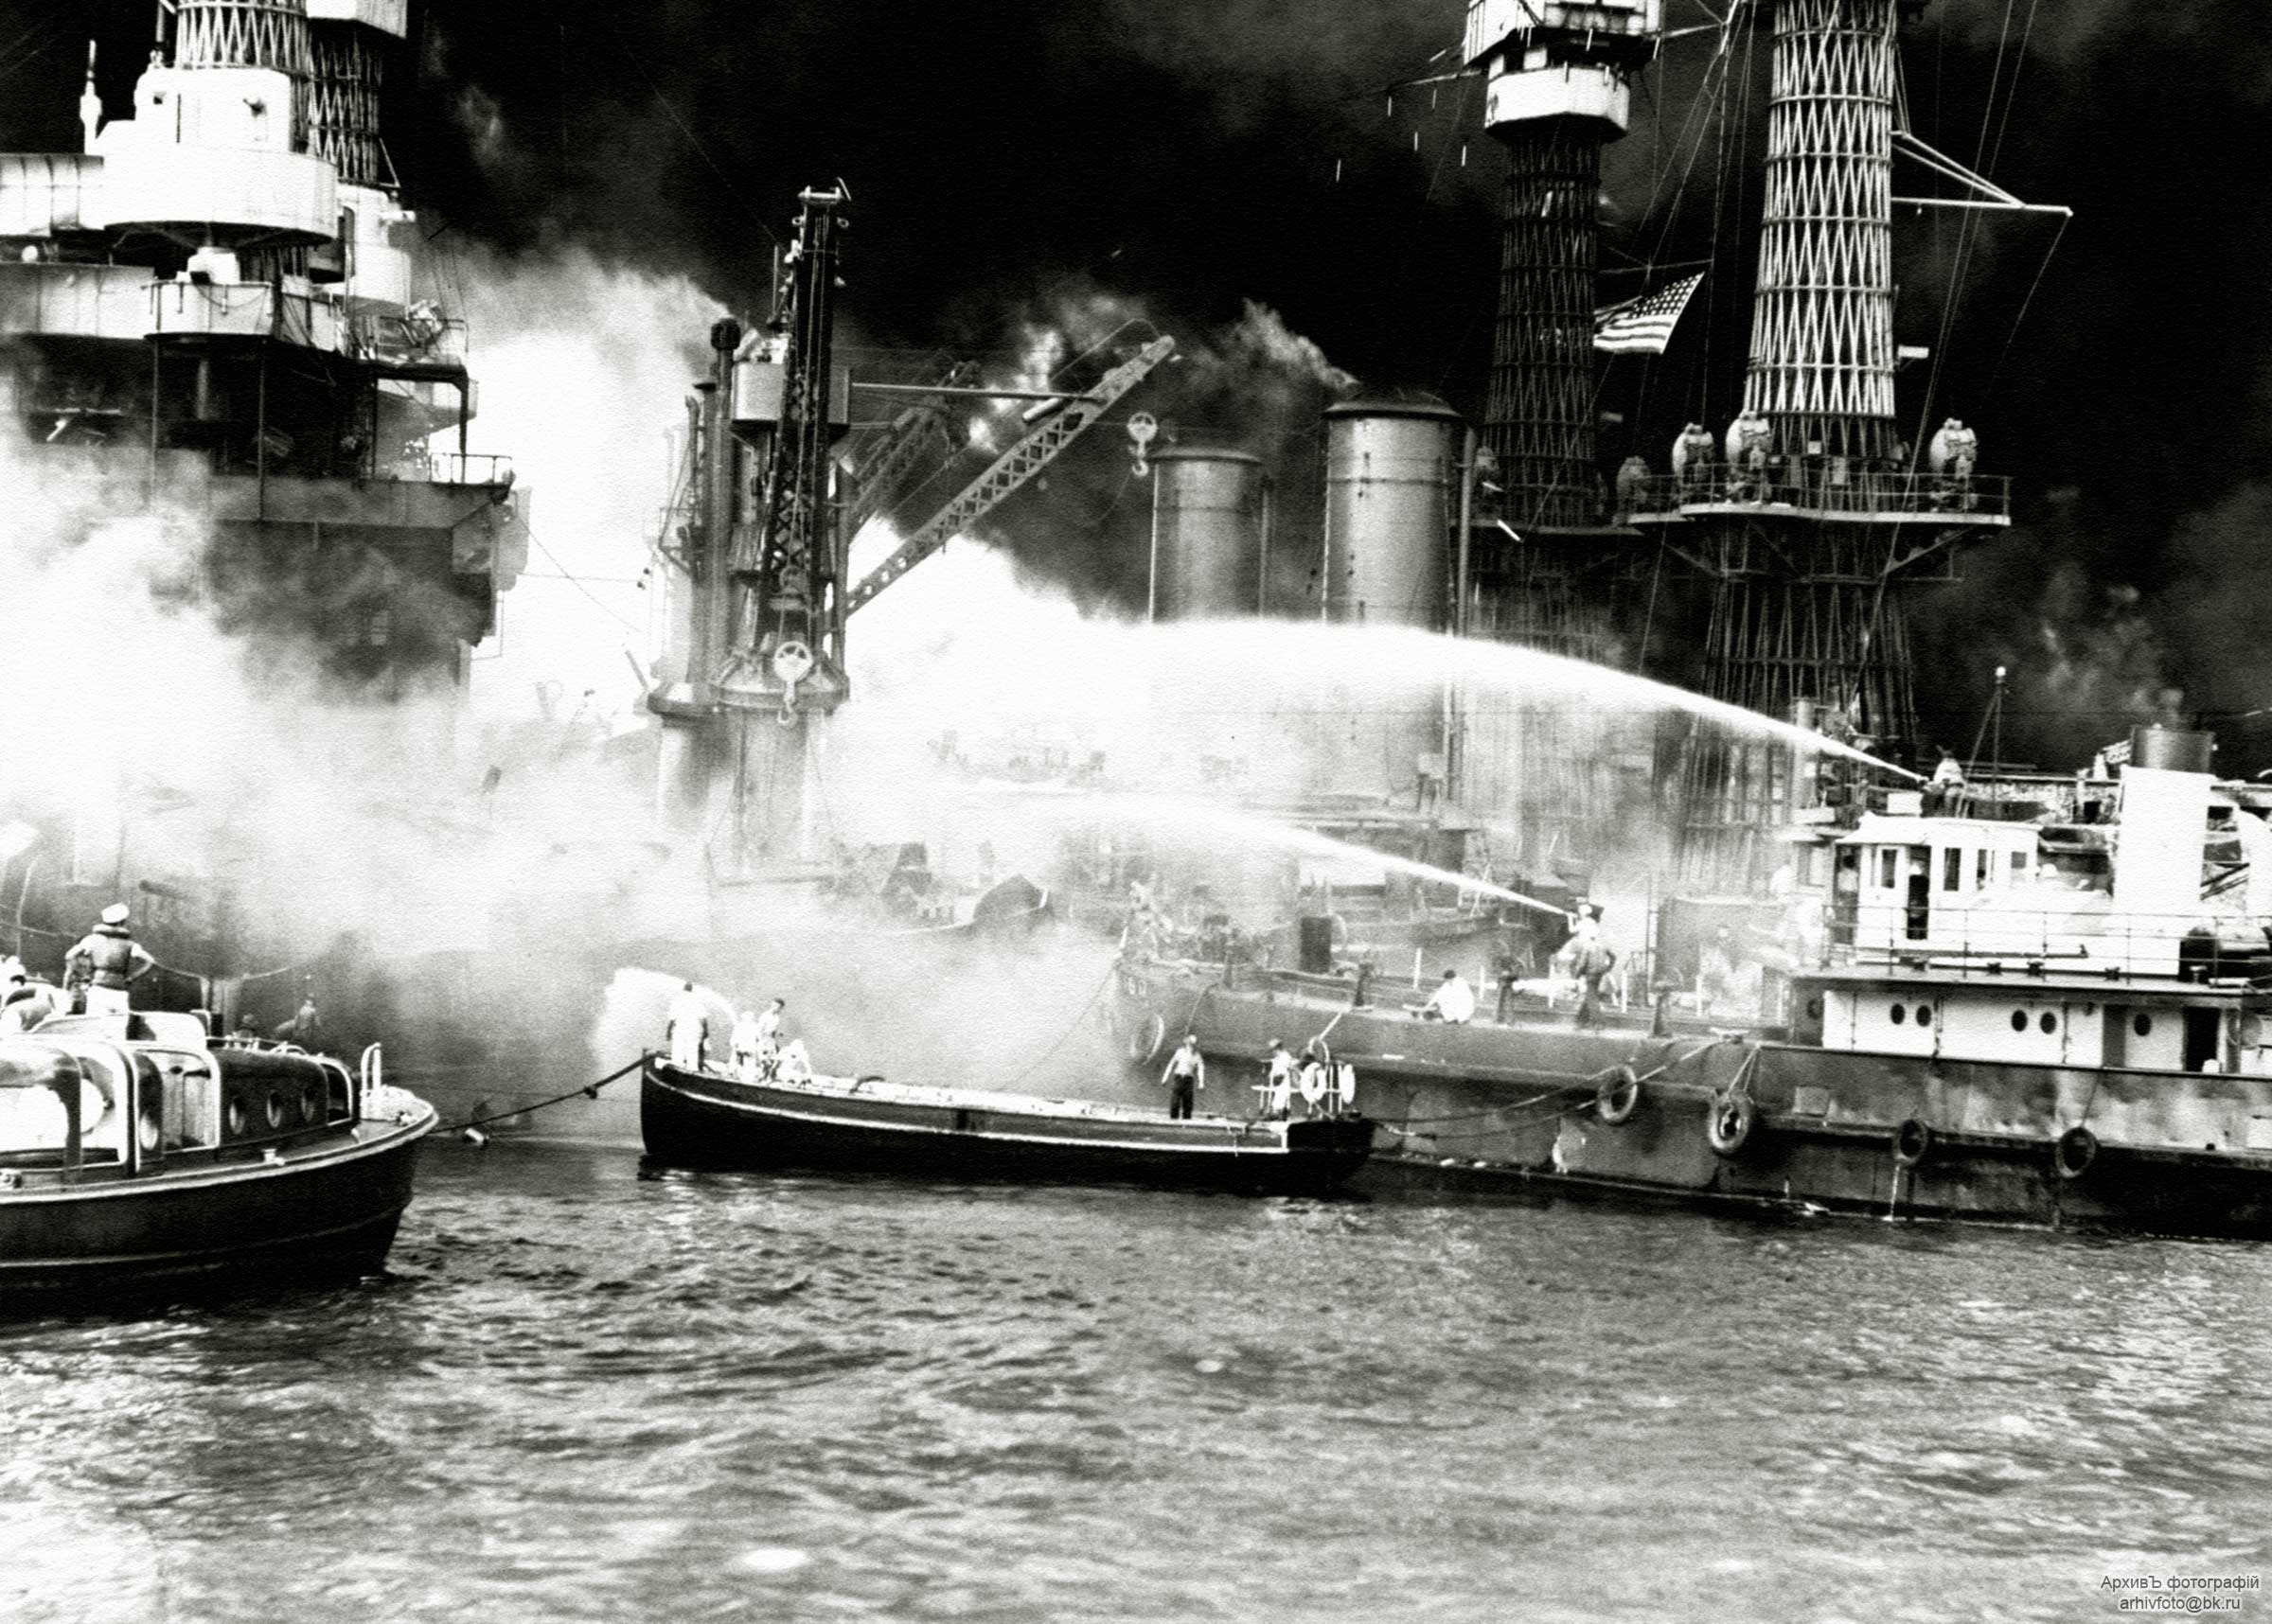 how the attack on parl harbor shaped the involvement of americans in world war ii